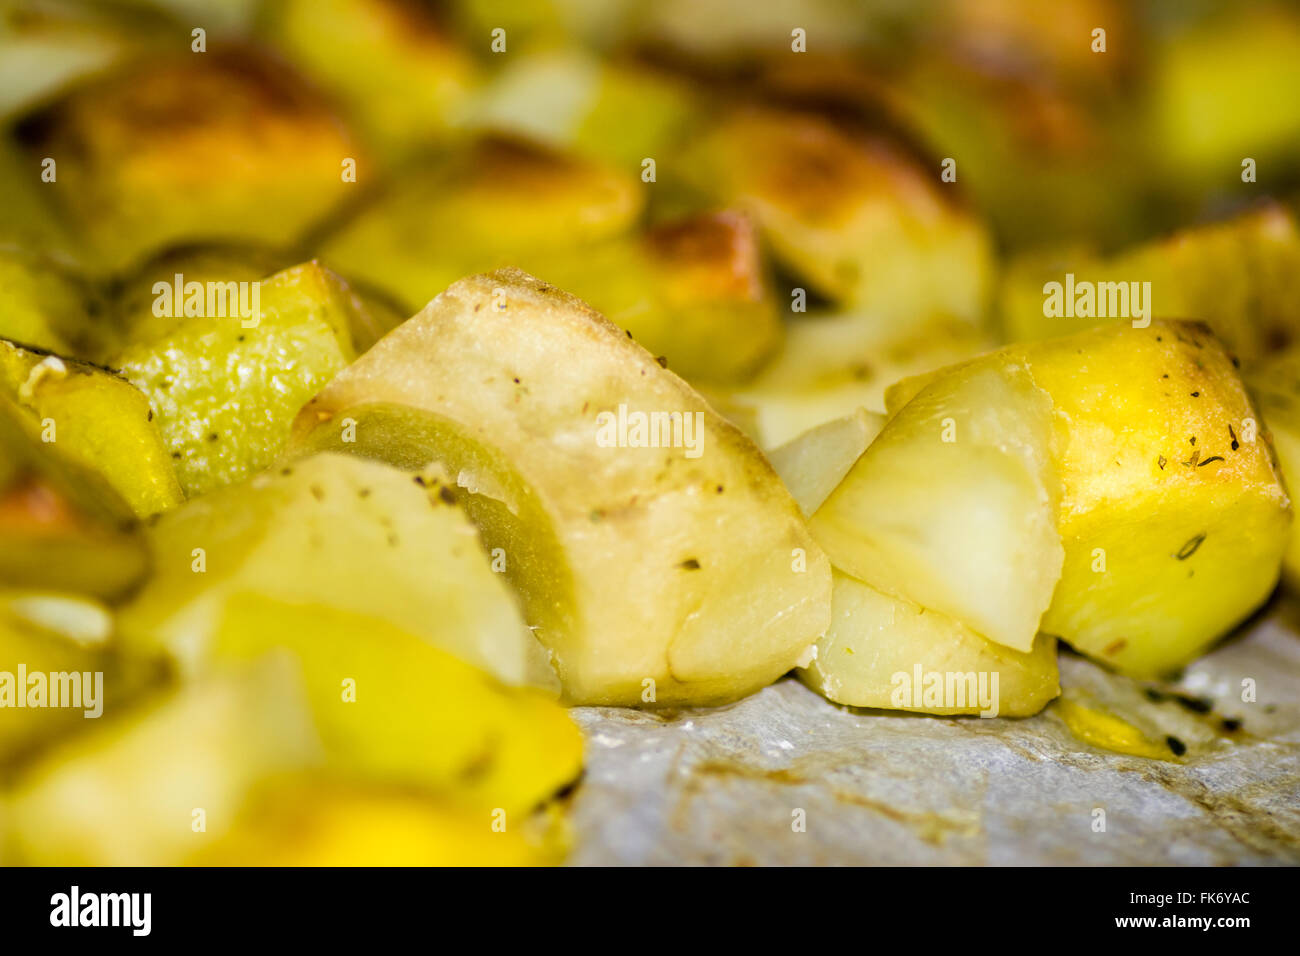 foods fried prepared potato snack drink french eating Stock Photo